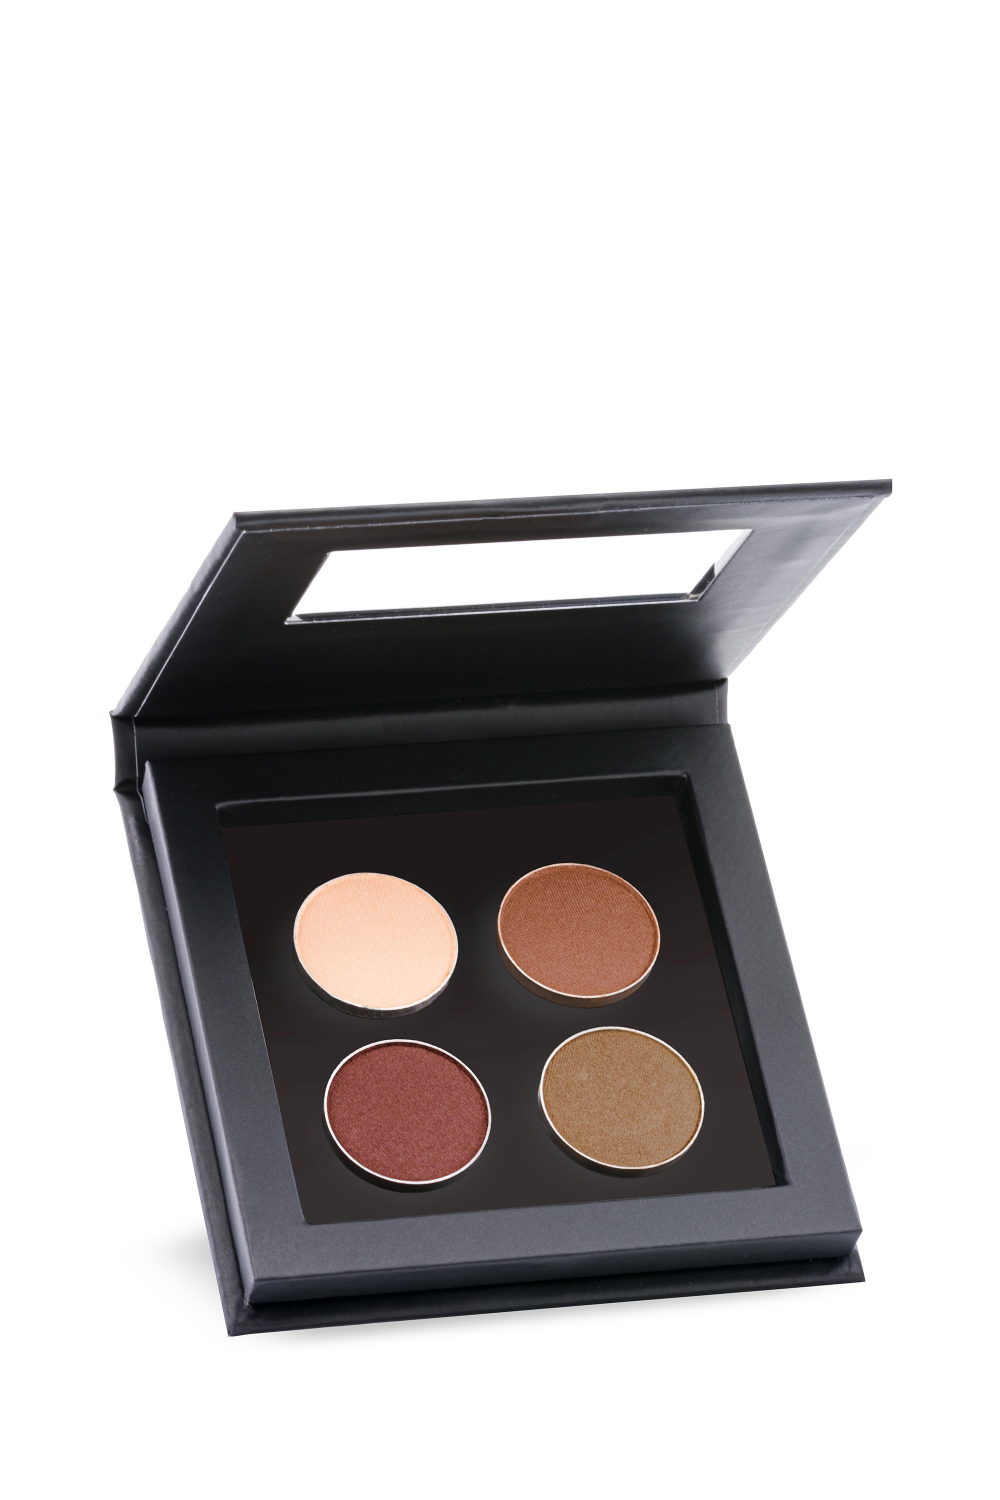 WARM GERMINI - EYE SHADOW PALETTE